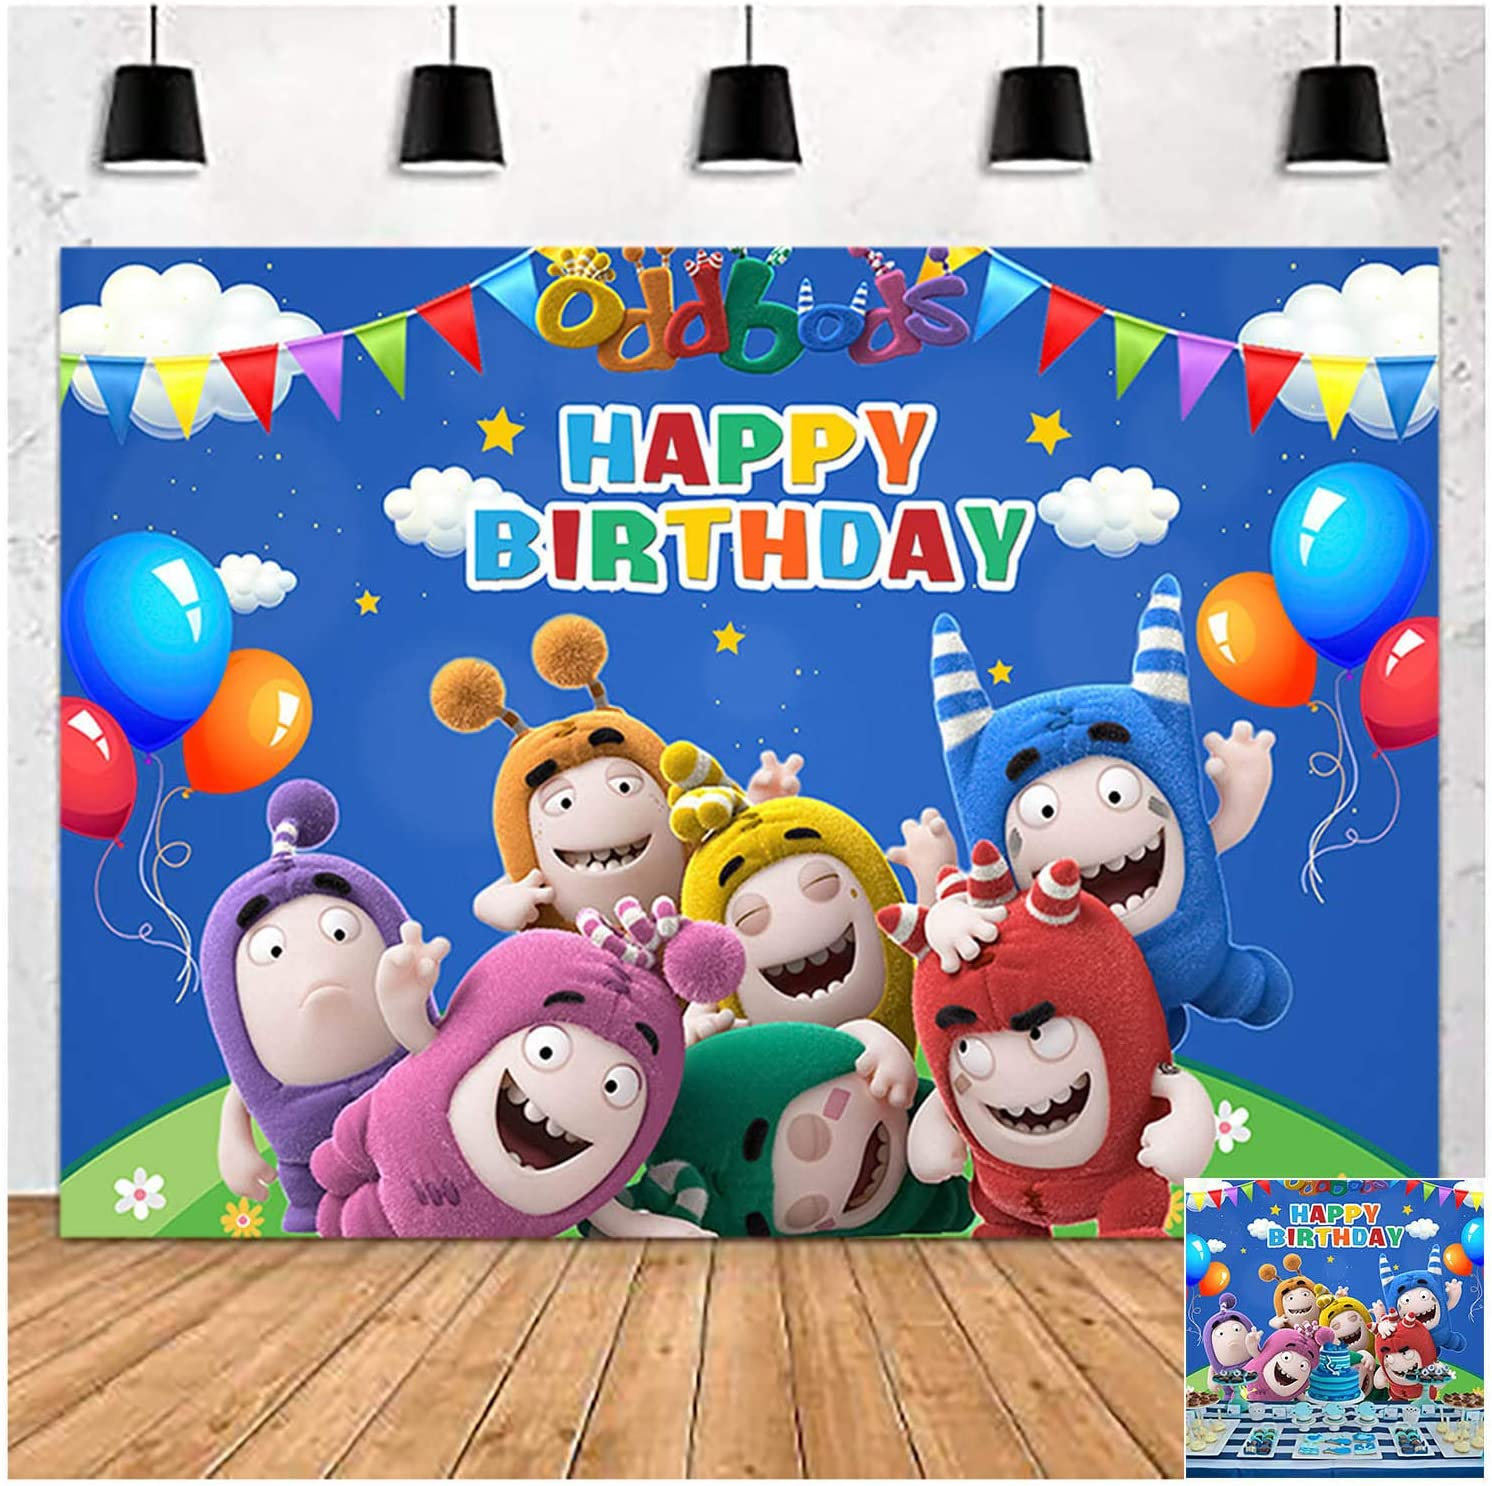 Cartoon Blue Sky and White Clouds Oddbods Happy Birthday Photography Backdrop 5x3ft Children Boys or Girl Birthday Photo Background Newborn Baby Shower Kids Party Banner Cake Table Decor Props Vinyl